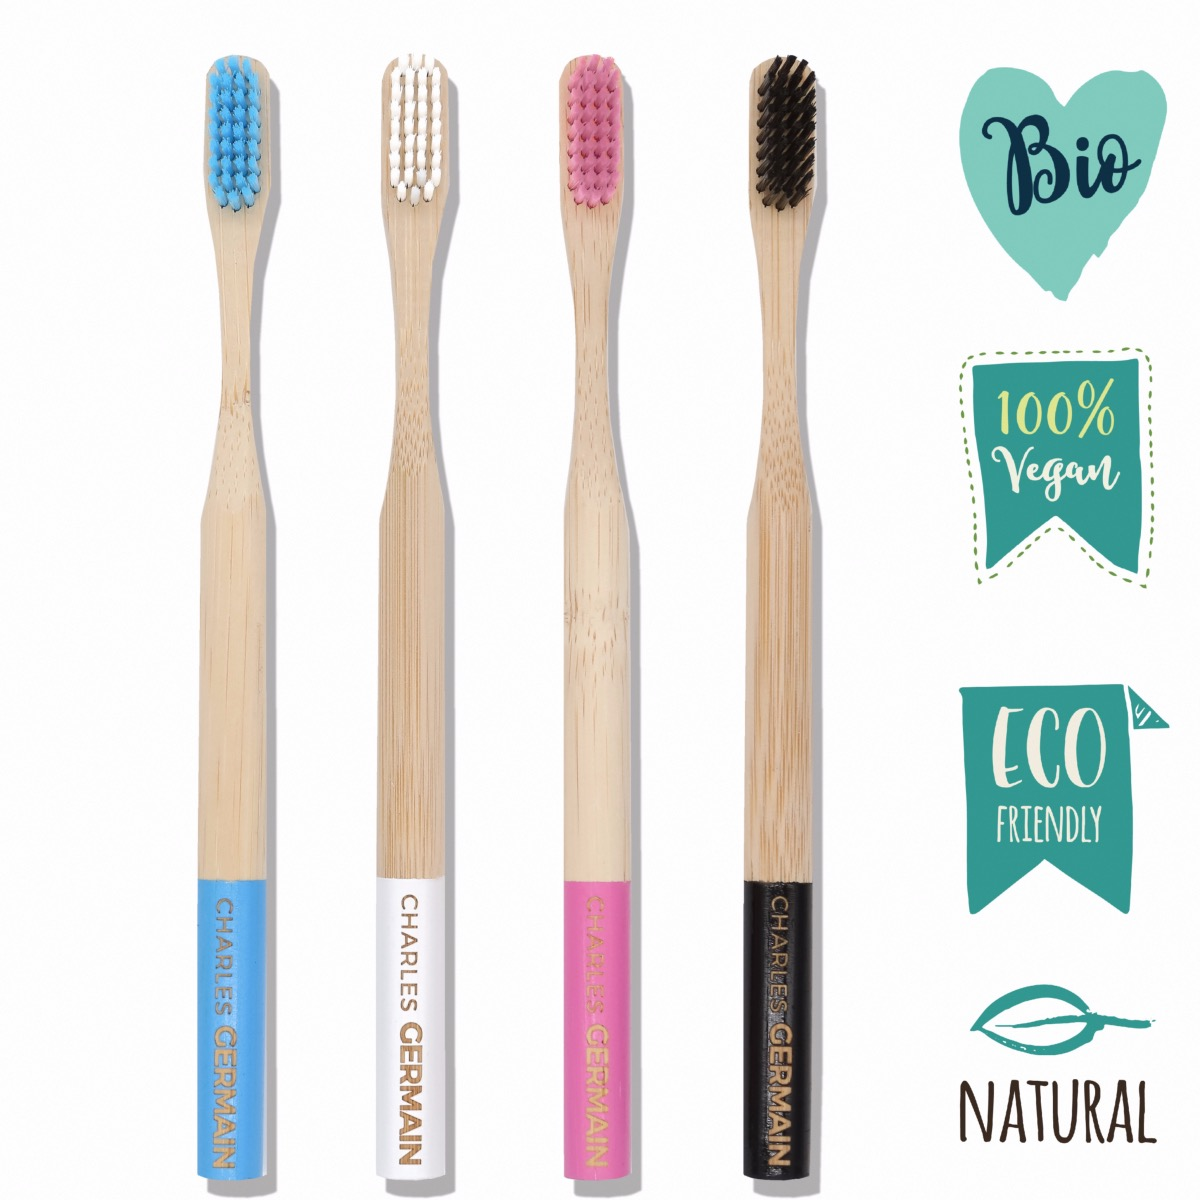 Brosses à dents en Bambou naturel coffret de 4